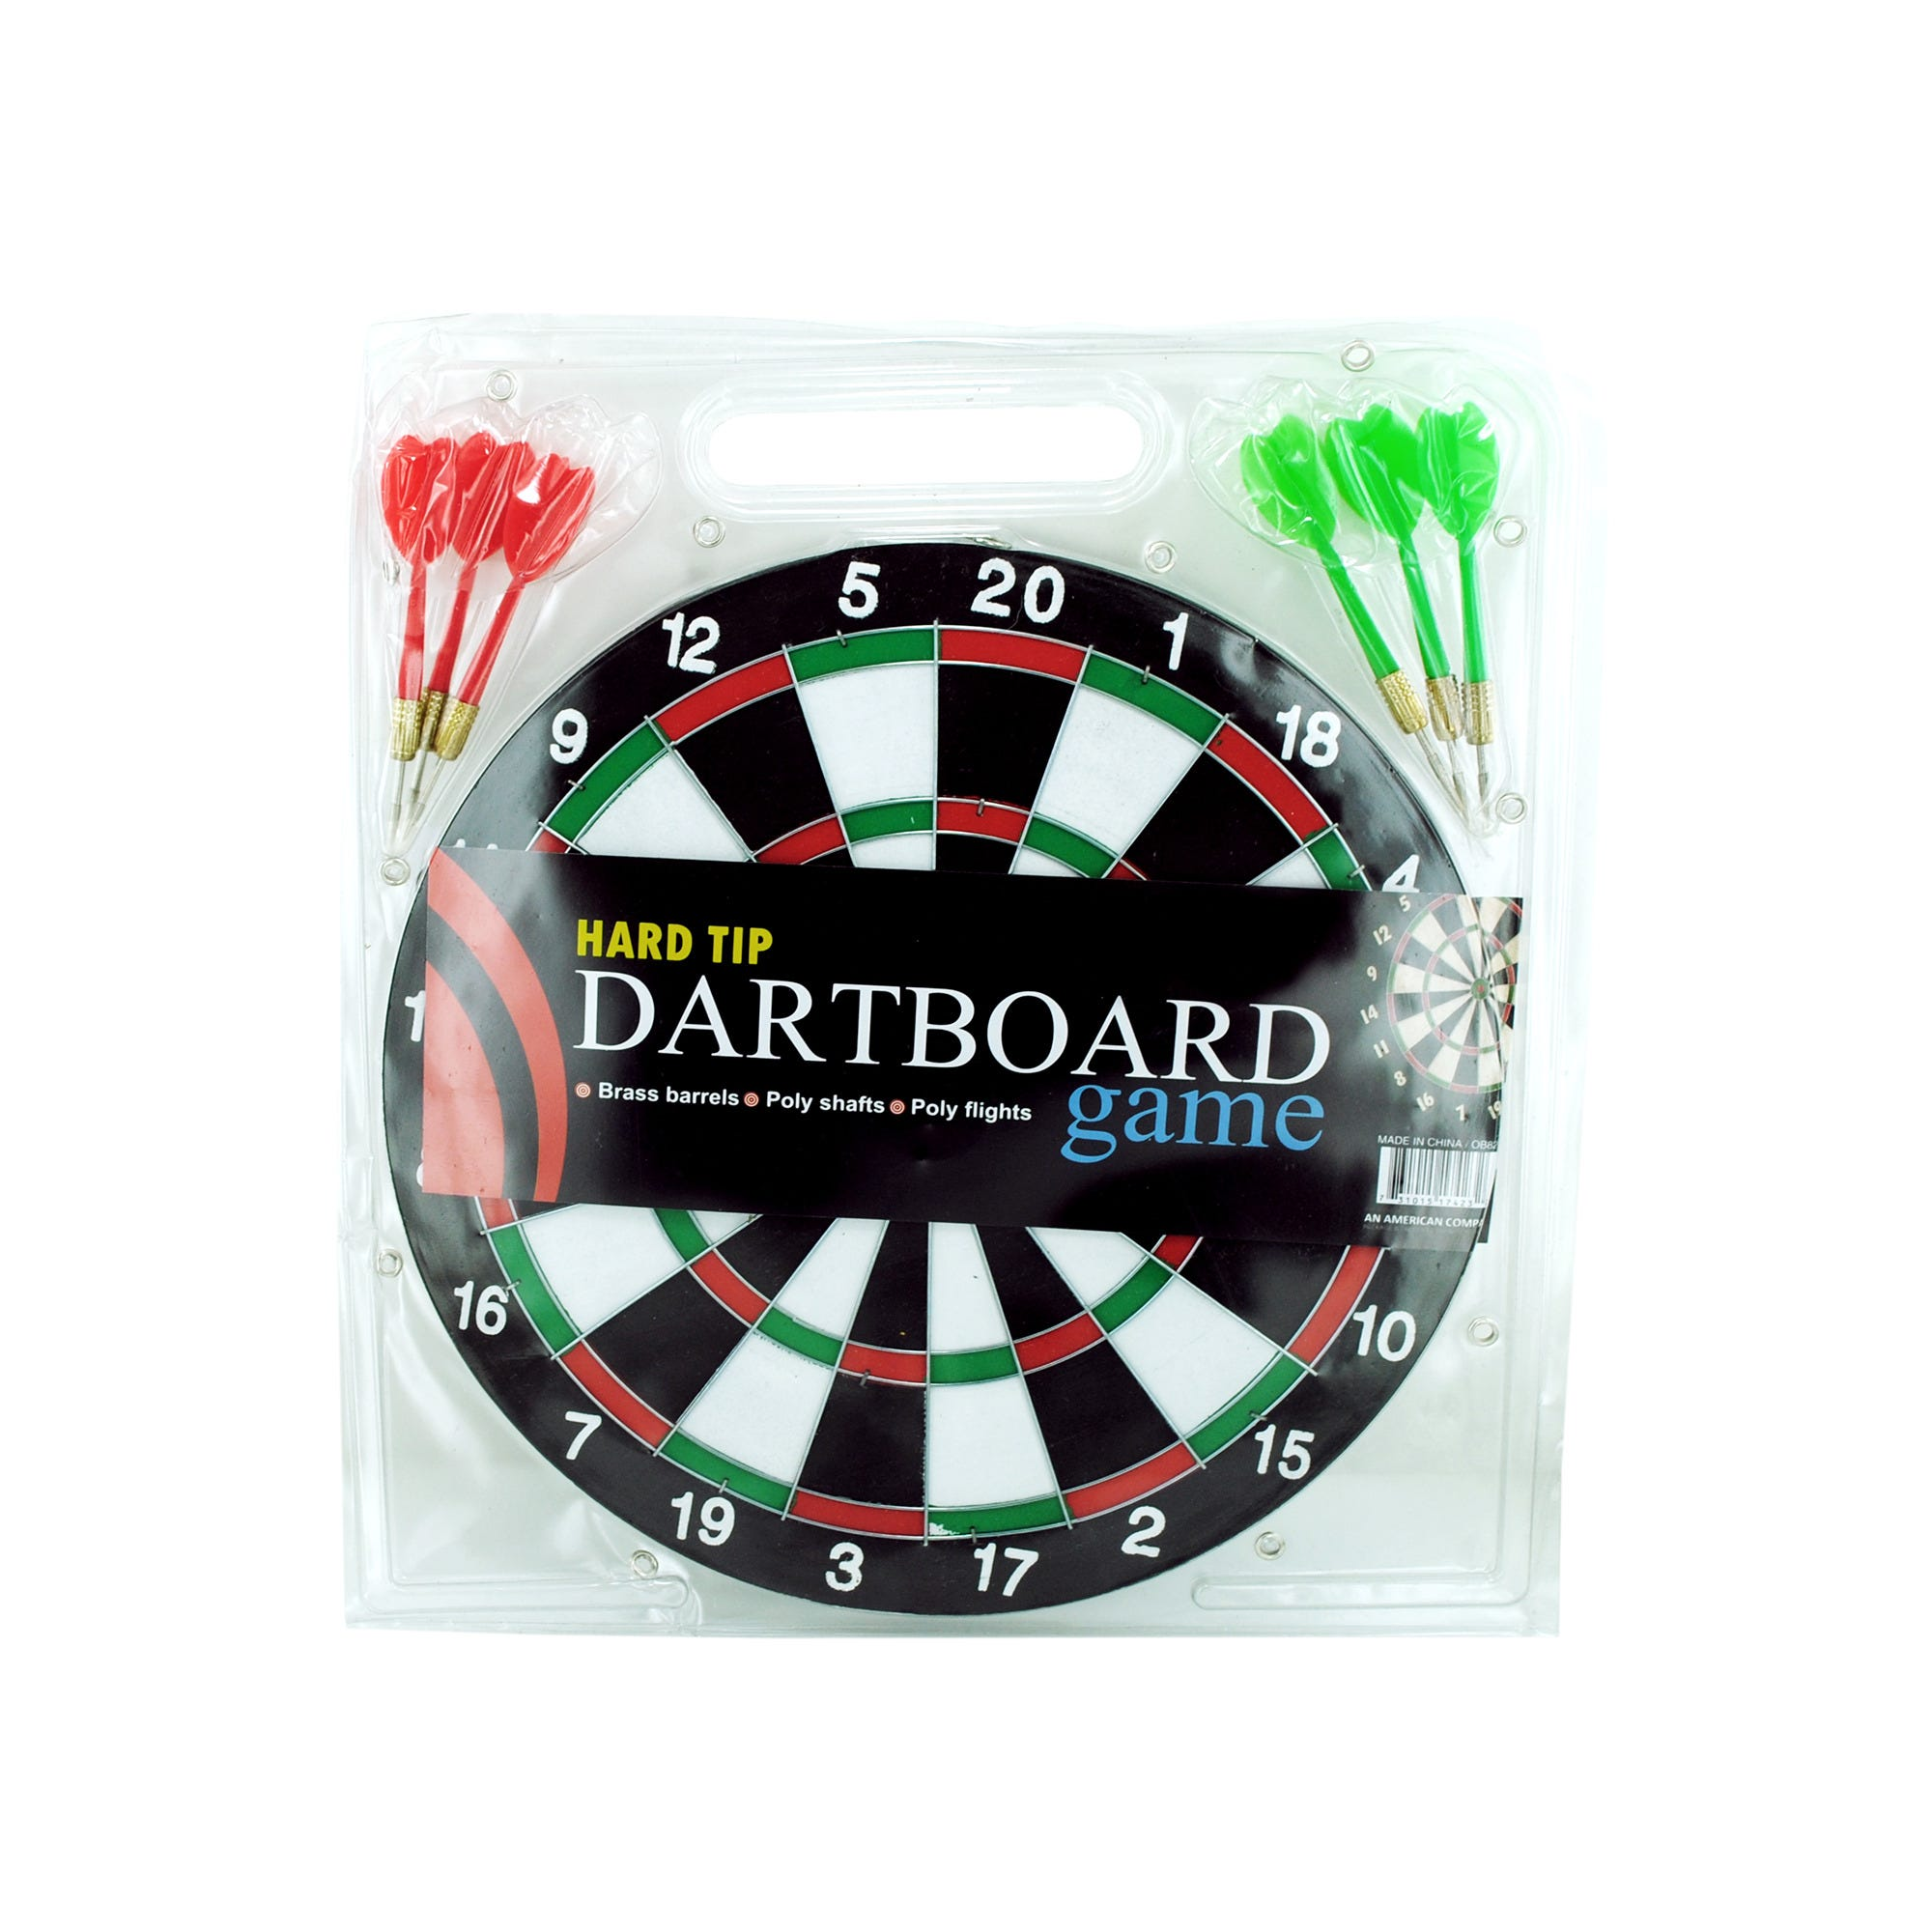 DARTBOARD Game with Hard Tip Darts- Qty 8